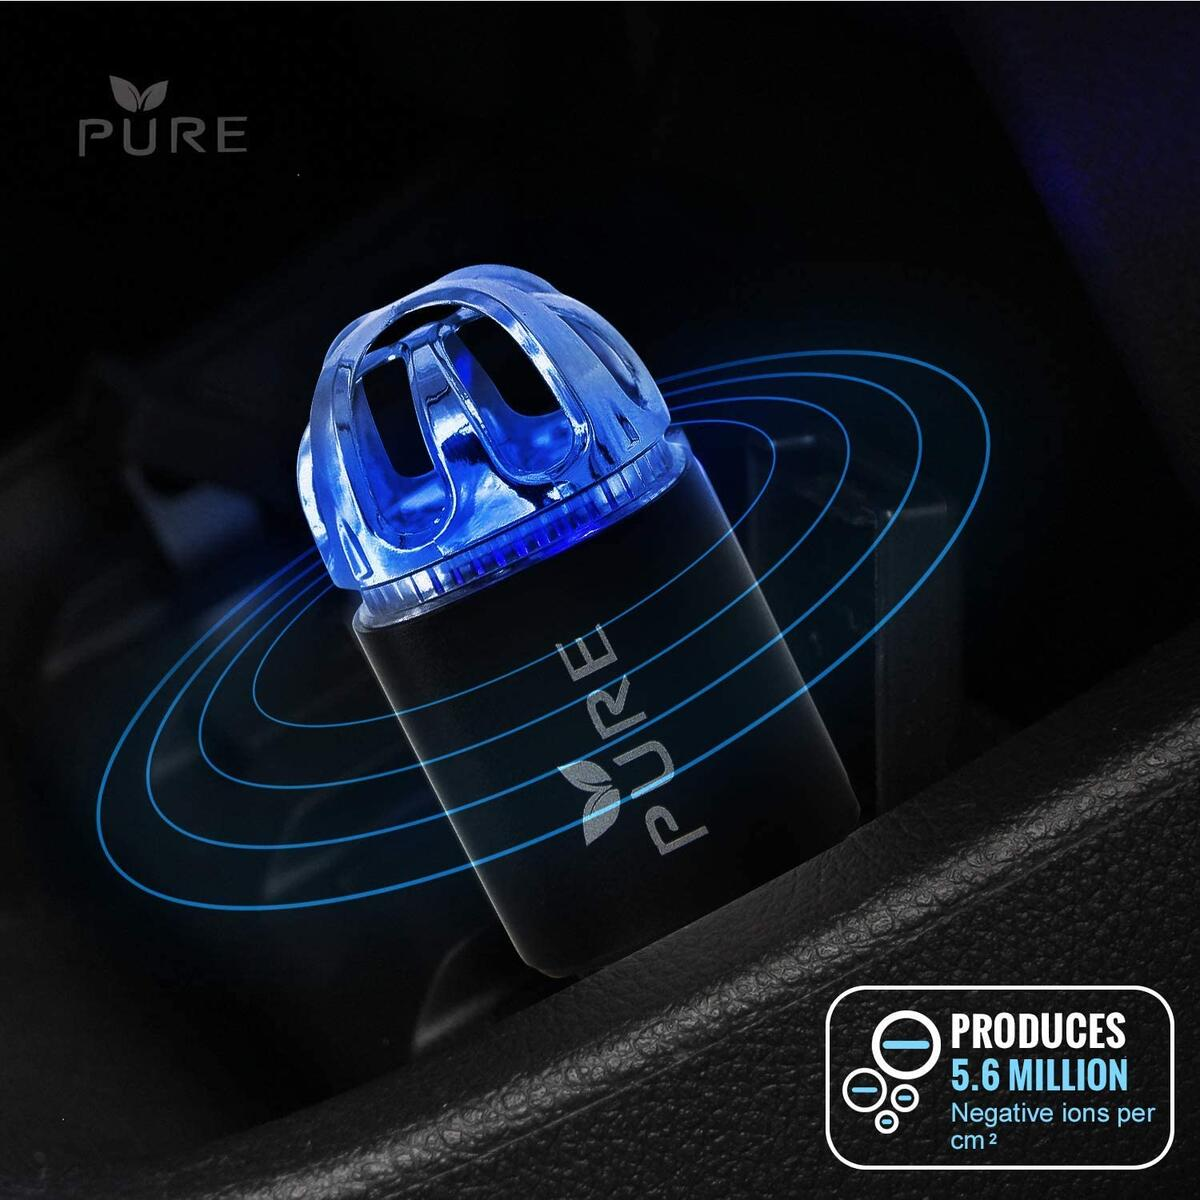 PURE Car Air Purifier Premium Air Ionizer & Car Charger Accessory w/Dual USB Ports - Quick Charge 3.0 - Eliminate Allergens Bad Odor Pet Smell Smoke Pollen Mold Bacteria Viruses PM2.5 & VOCs Deodorizer